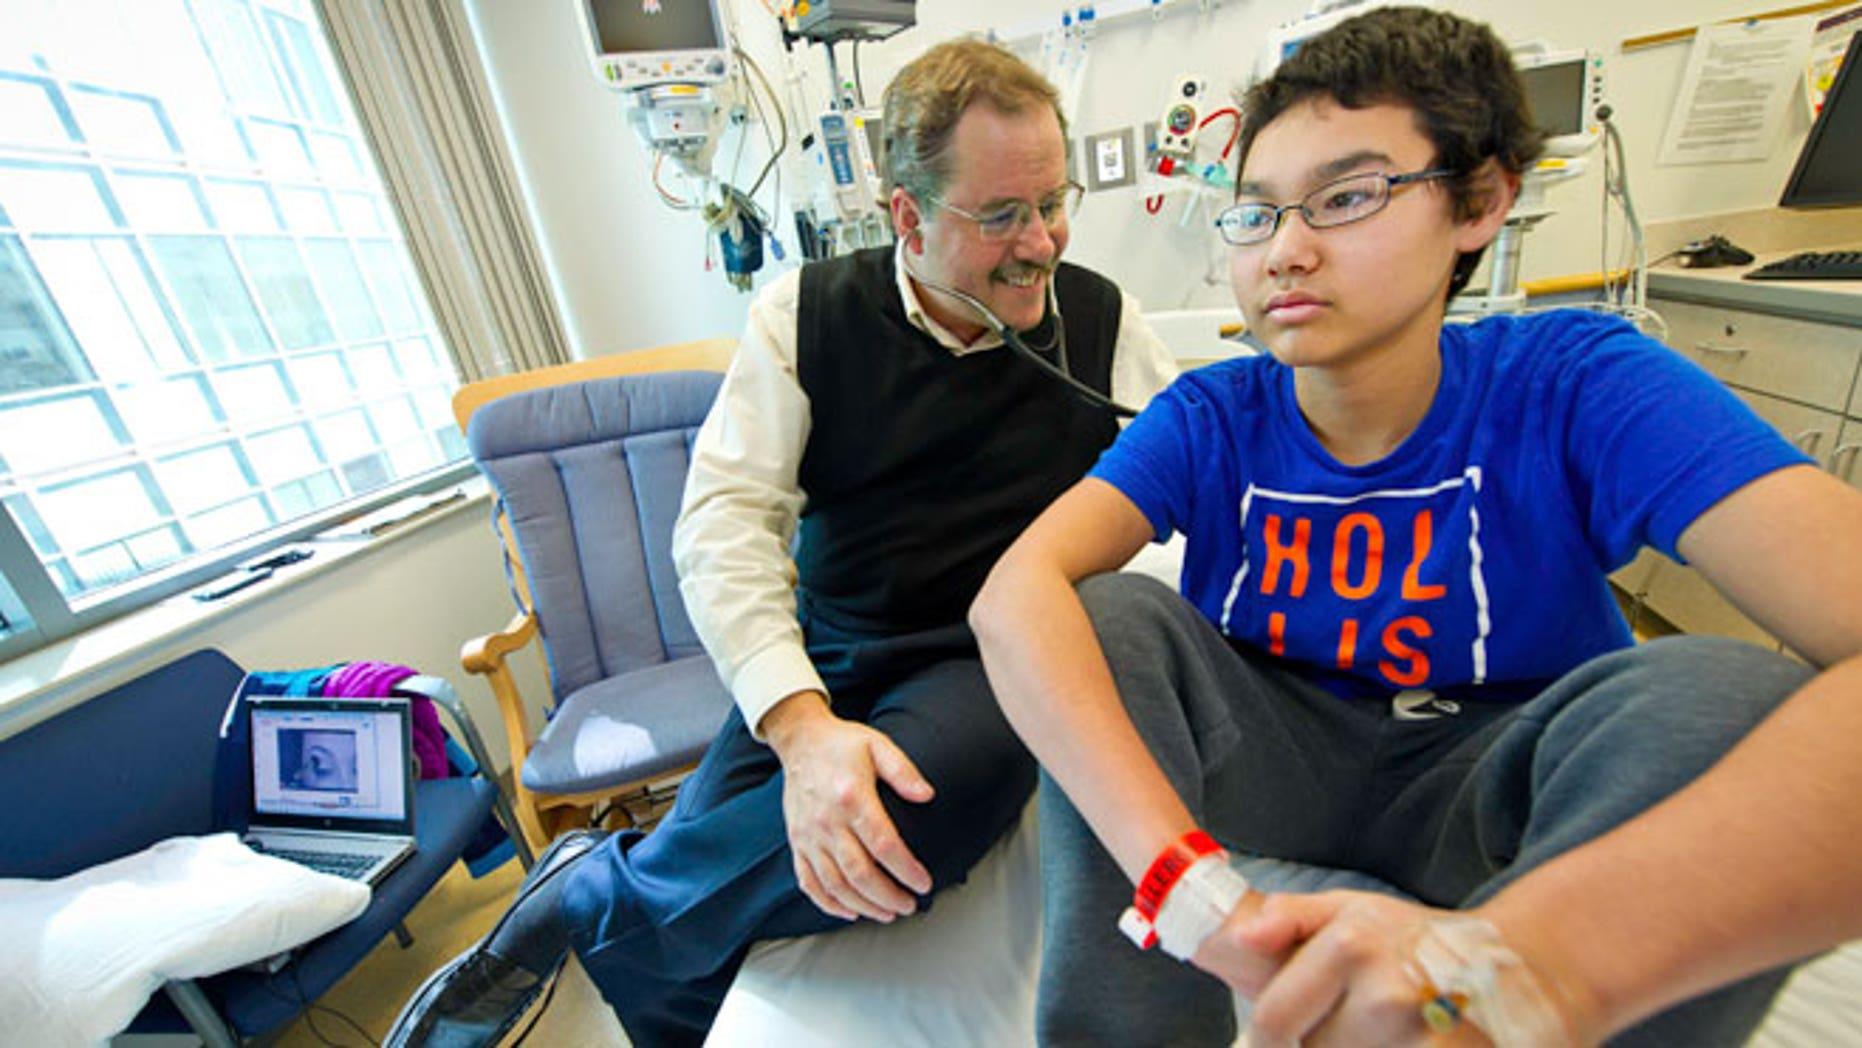 Dr. Stephan Grupp, of the Children's Hospital of Philadelphia (CHOP), with patient Nick Wilkins.